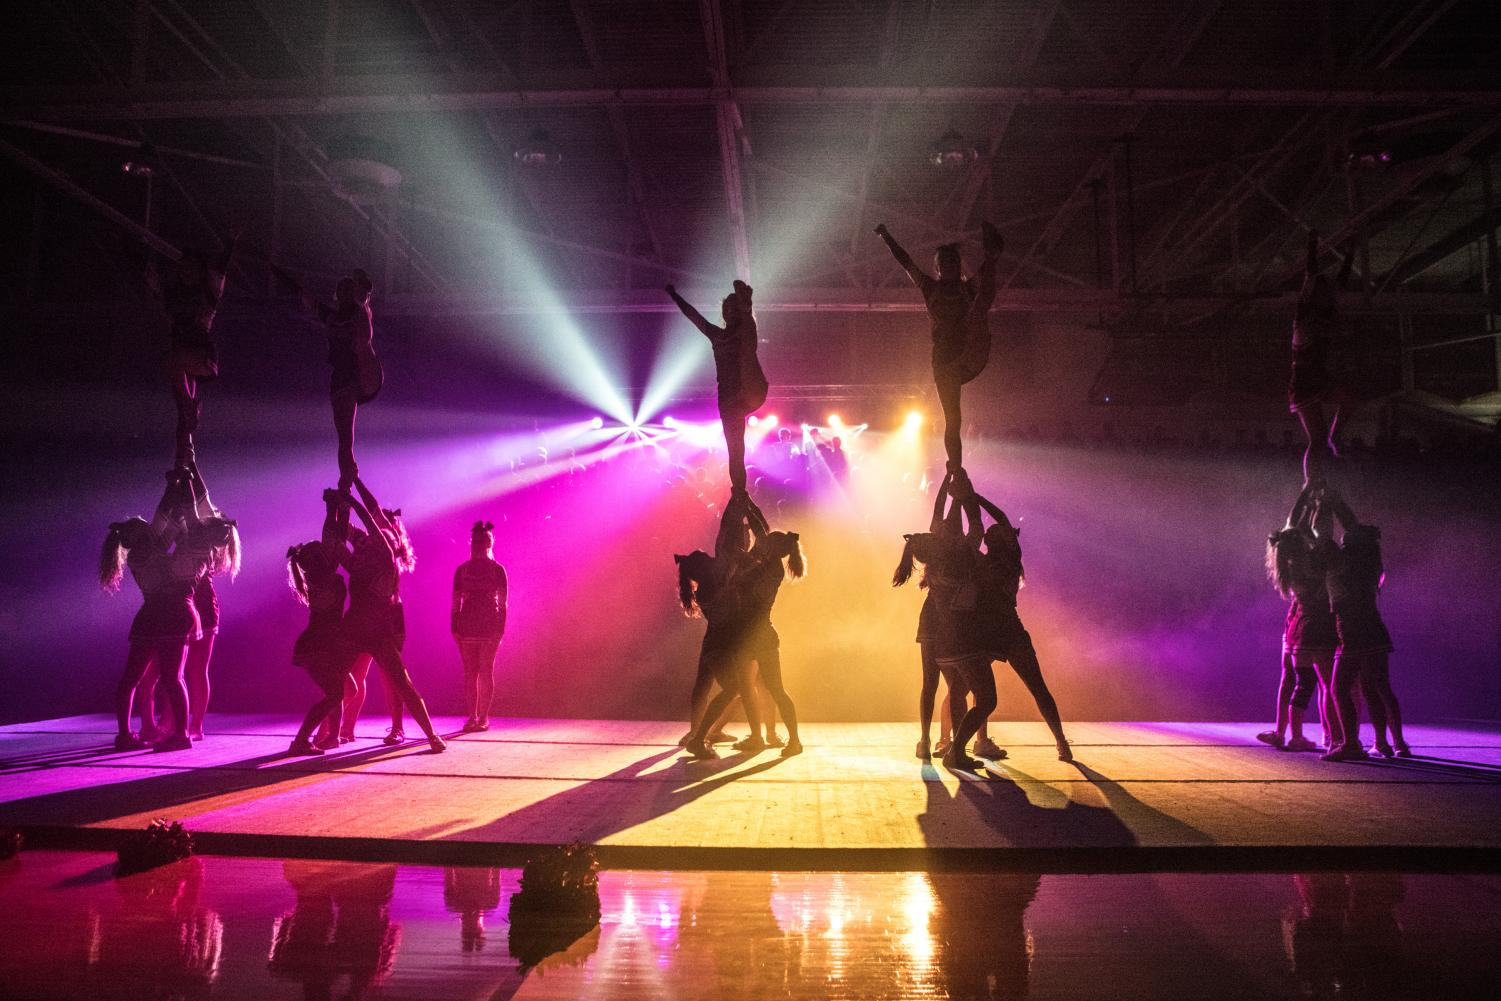 The cheer team's hard work, evident at this year's pep rally, paid off with a trip to State.